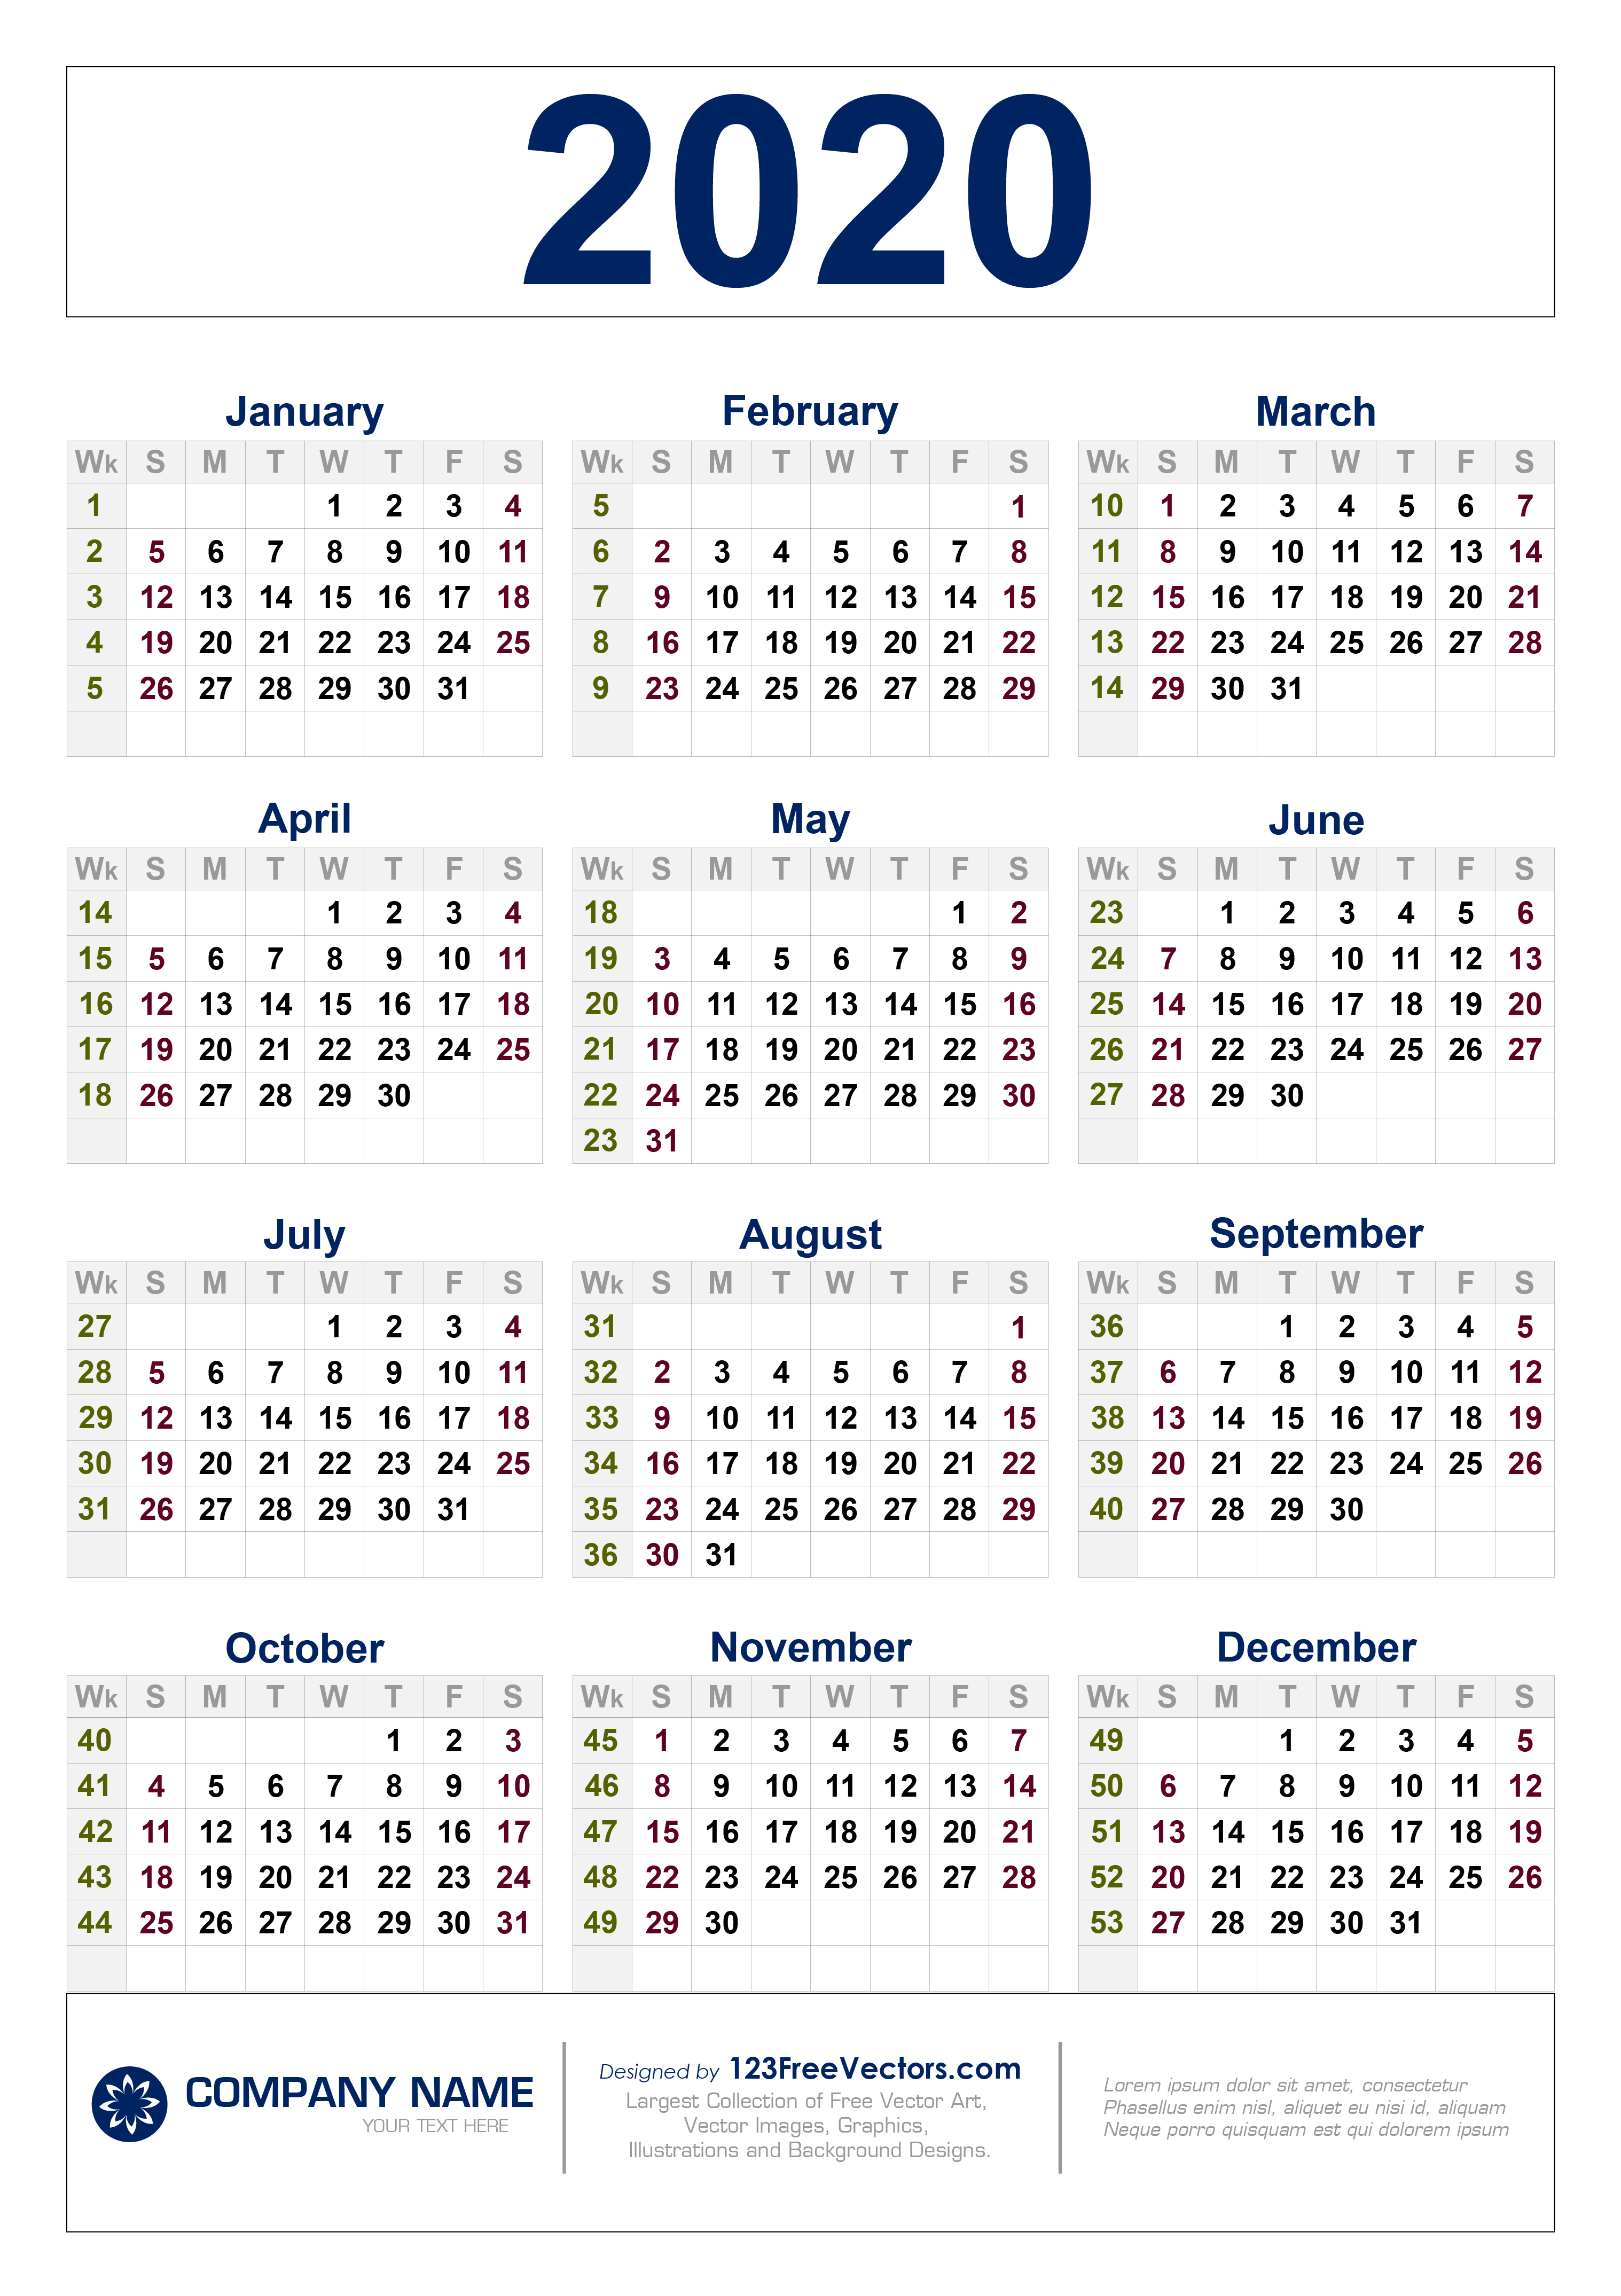 Free Download 2020 Calendar With Week Numbers for 2020 Calendars To Print Without Downloading